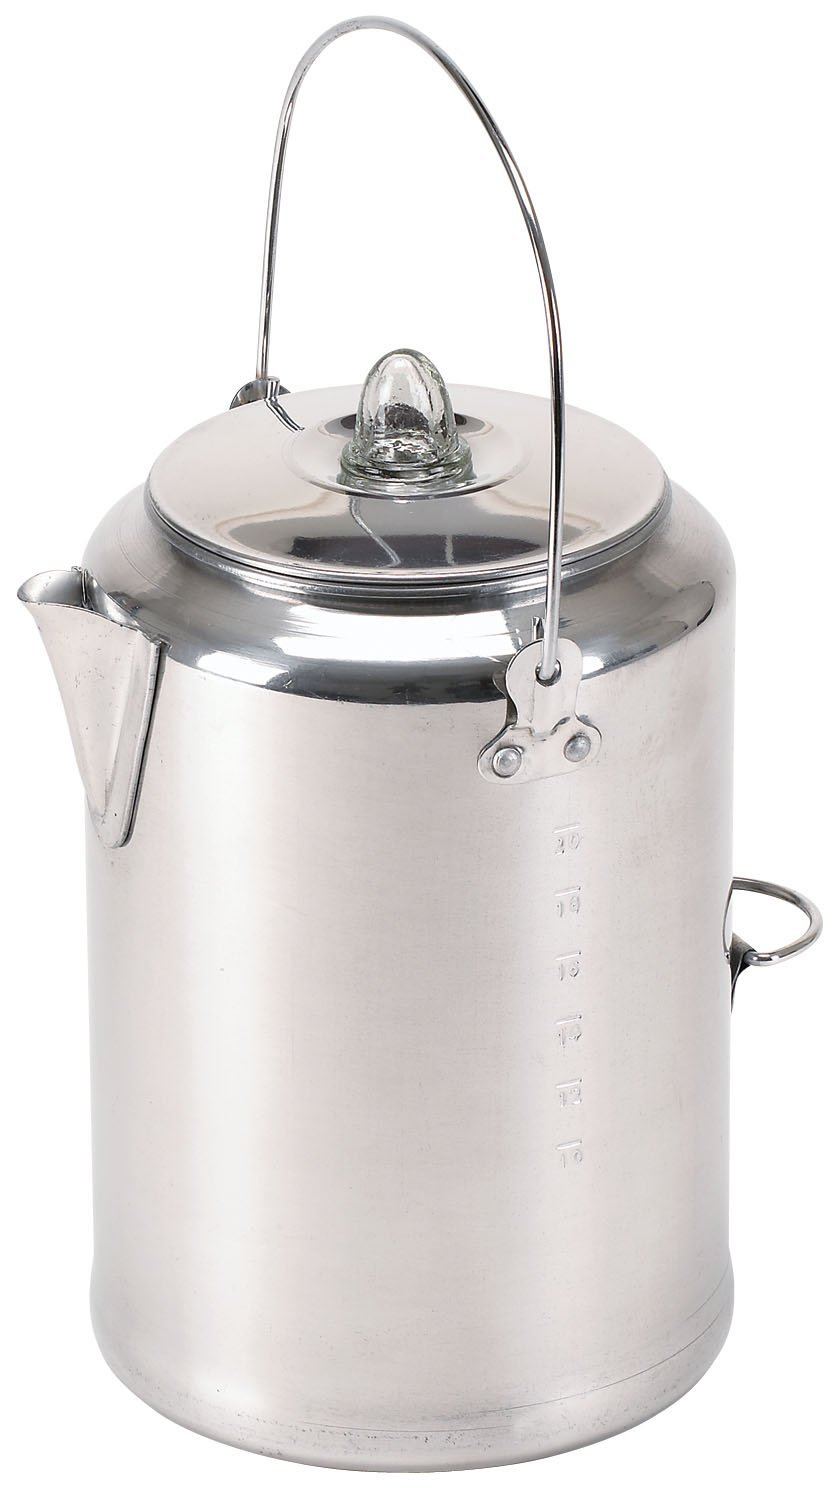 Stansport Aluminum 20 Cup Percolator Coffee Pot [Kitchen]